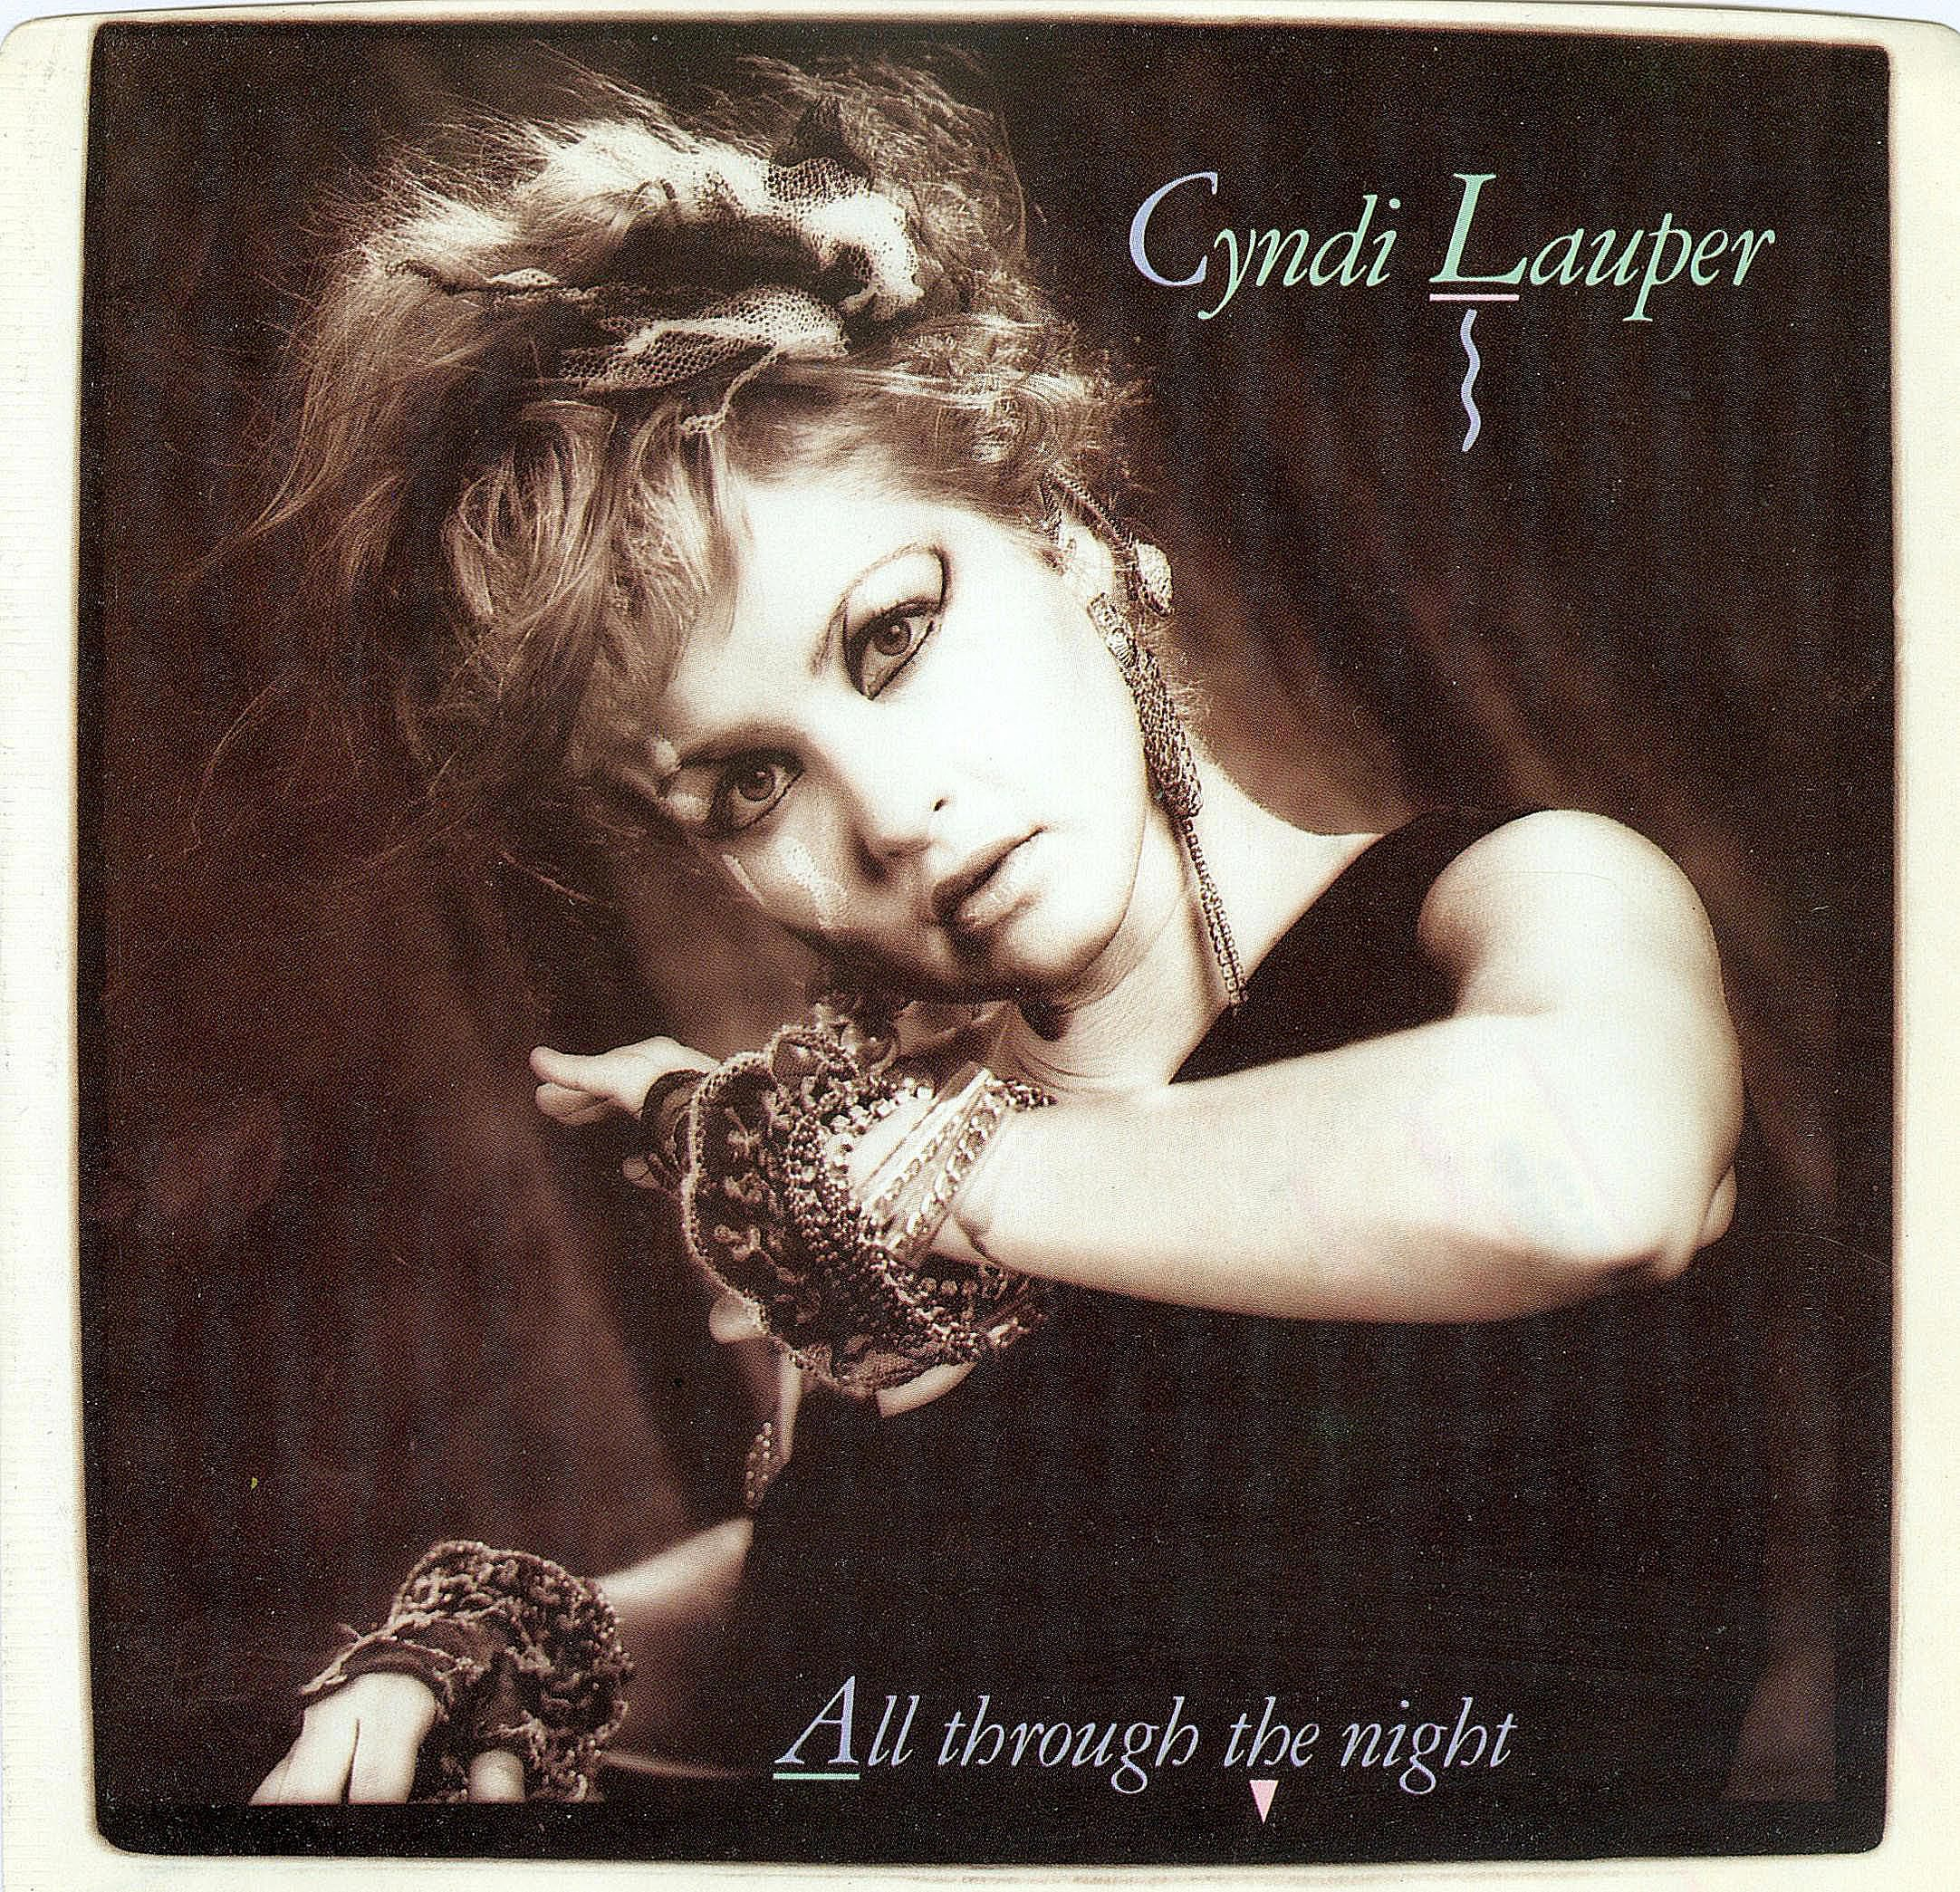 Top '80s Songs of Iconic '80s Solo Artist Cyndi Lauper